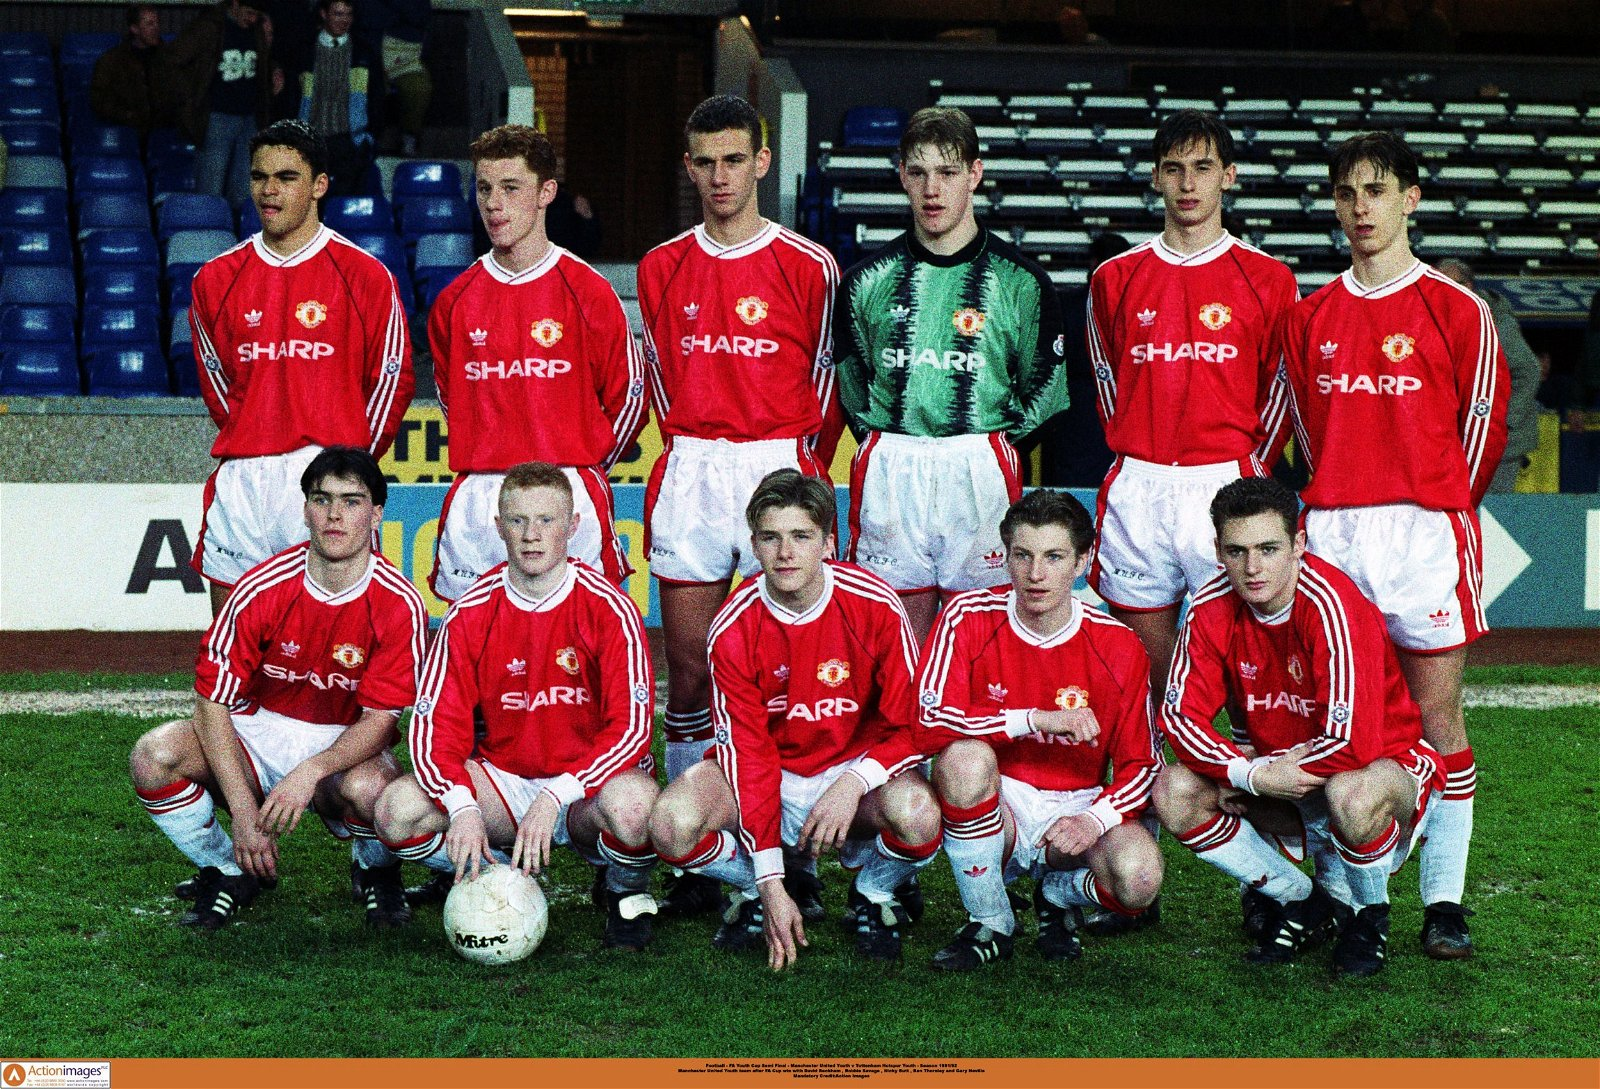 Class of 92 youth team photo